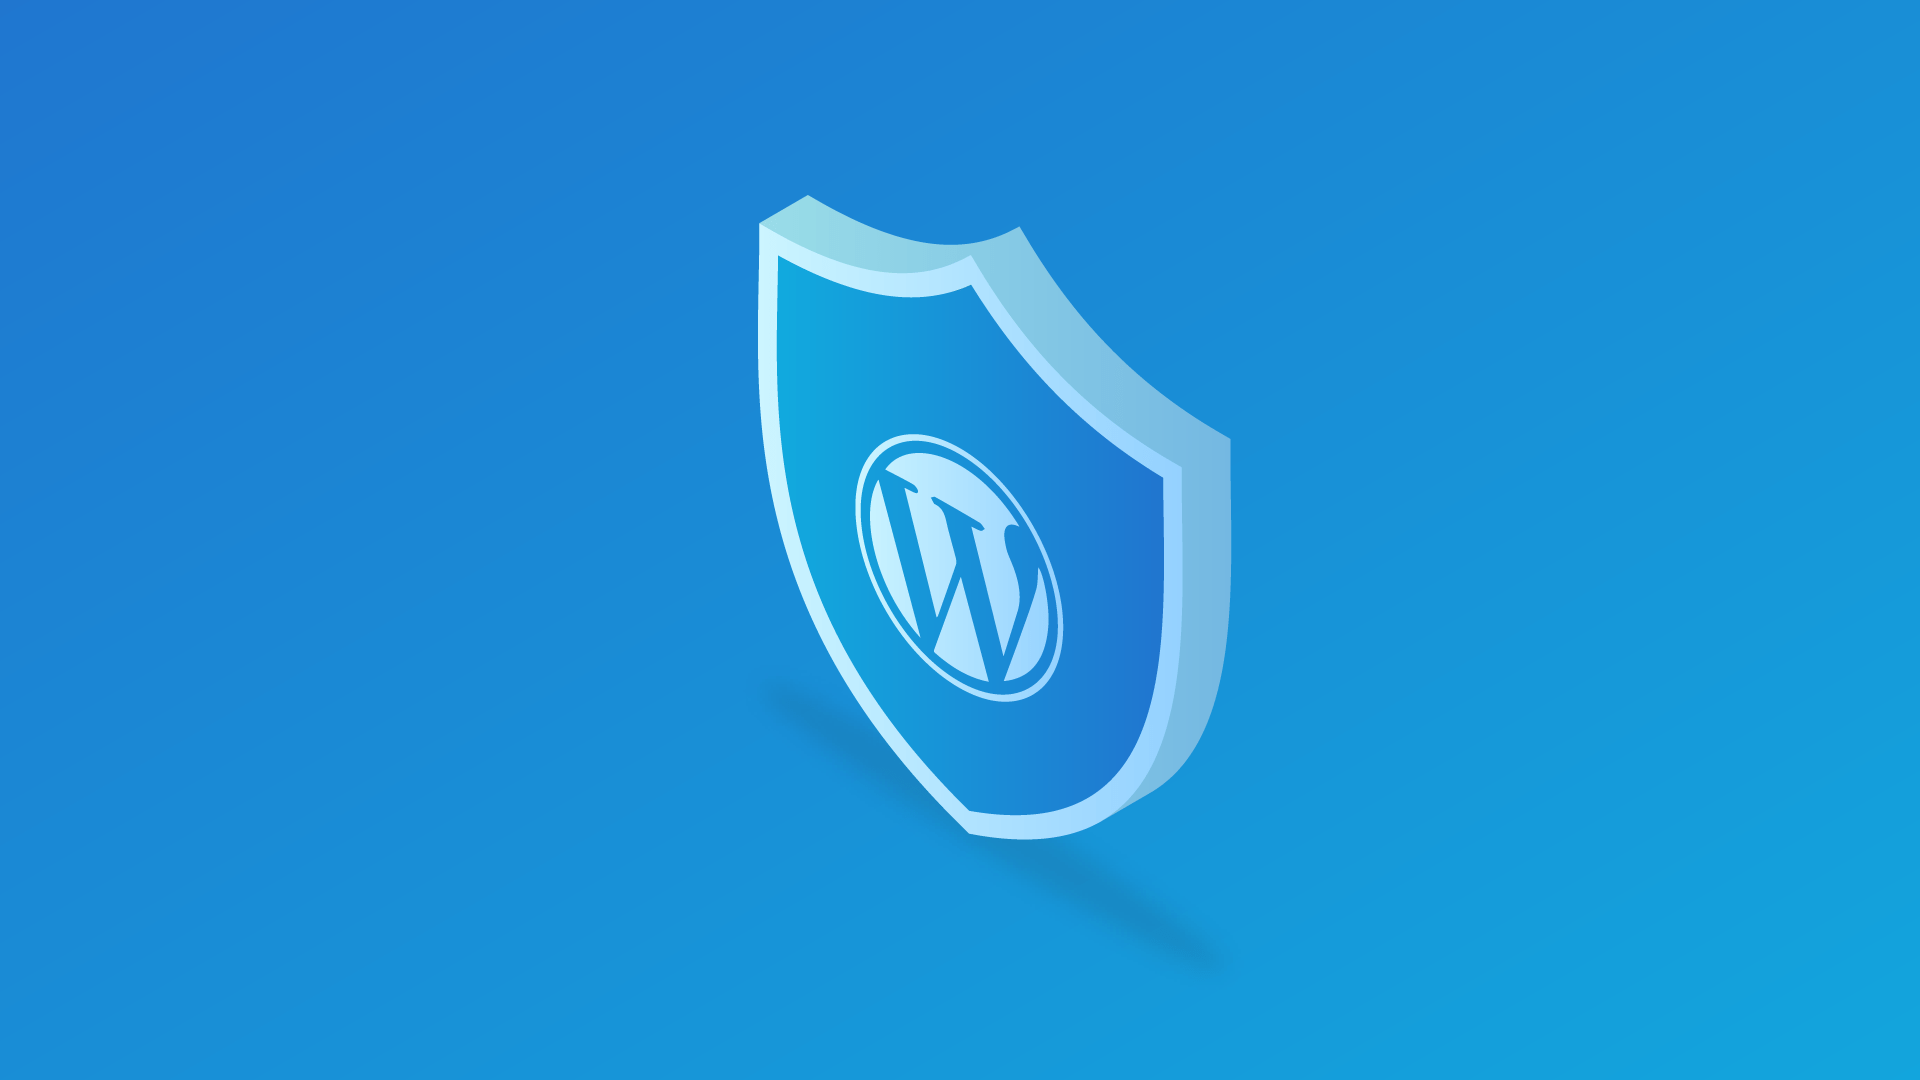 Como manter seu site WordPress seguro? - Blog da KingHost